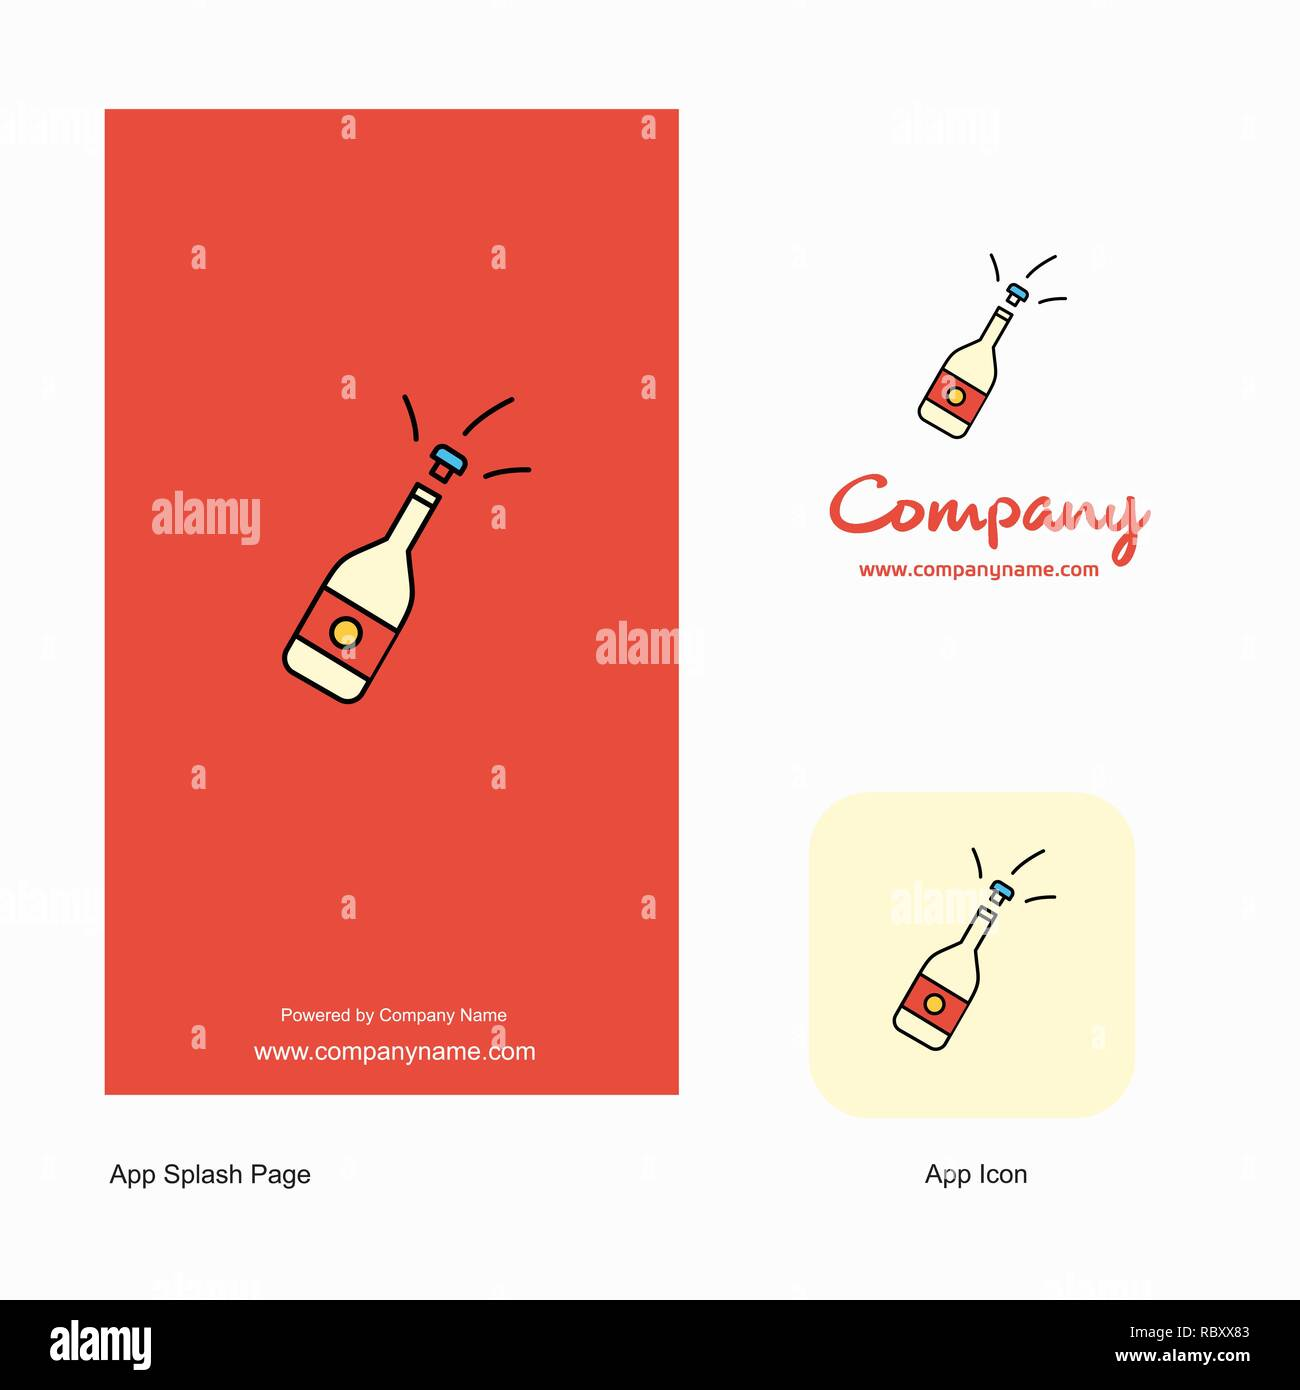 Celebrations drink Company Logo App Icon and Splash Page Design